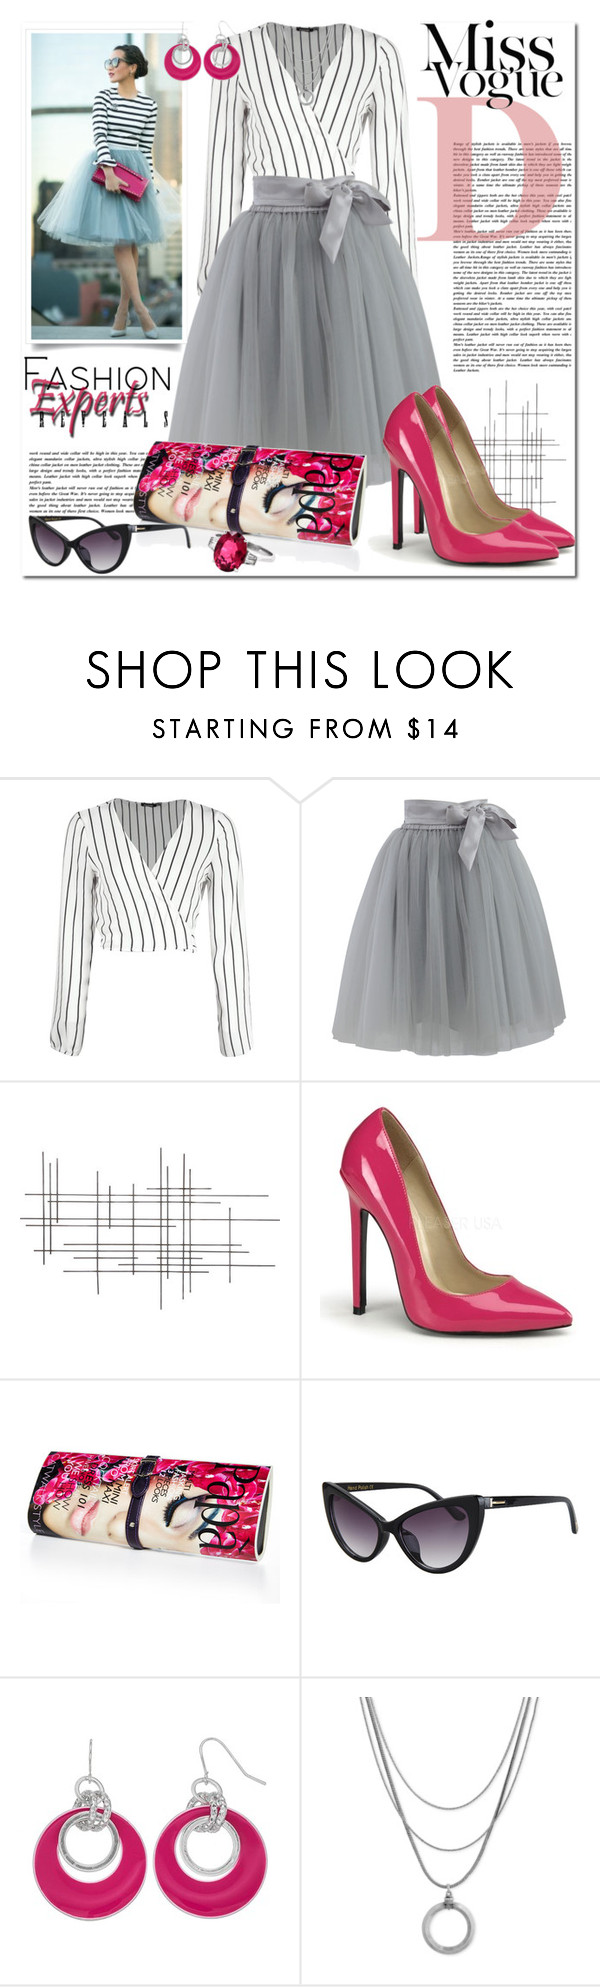 """""""#TRENDYSKIRT: Fashion Experts Reveals Tulle Styles"""" by msmith801 ❤ liked on Polyvore featuring Boohoo, Chicwish, Crate and Barrel, Papà Razzi and Lucky Brand"""